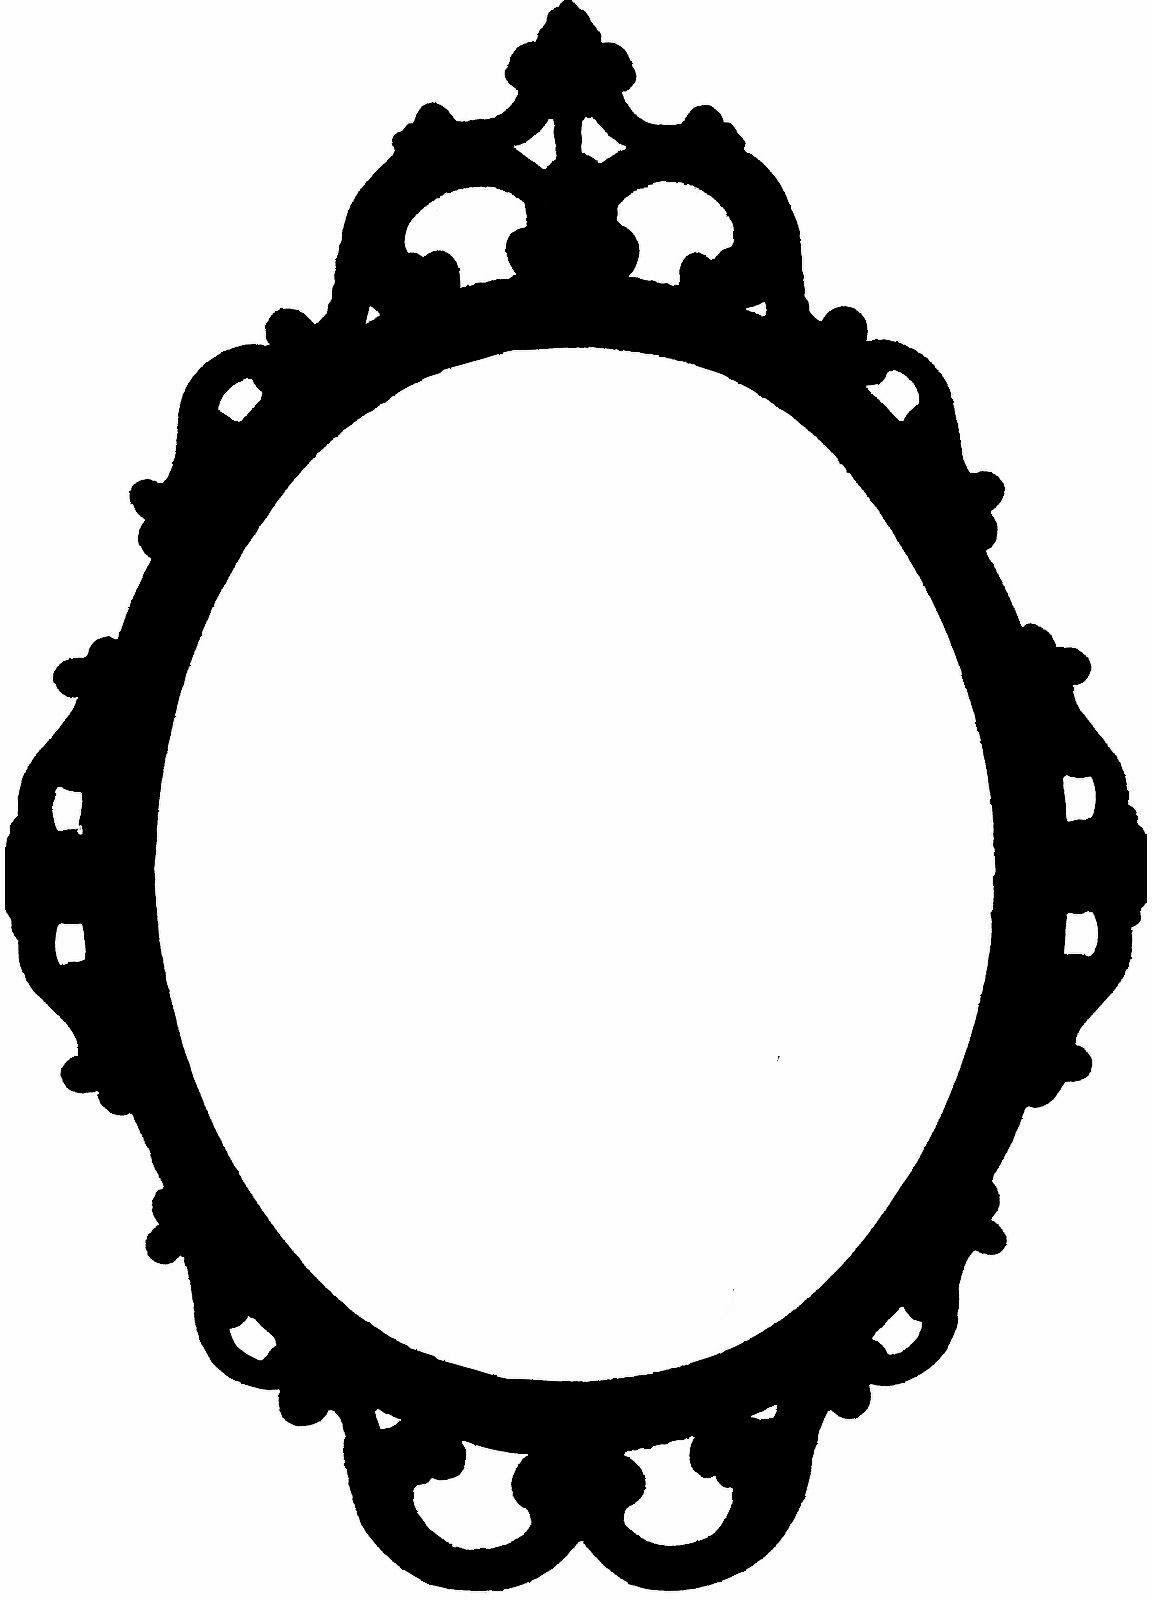 Mirror clipart svg. Another beautiful frame free